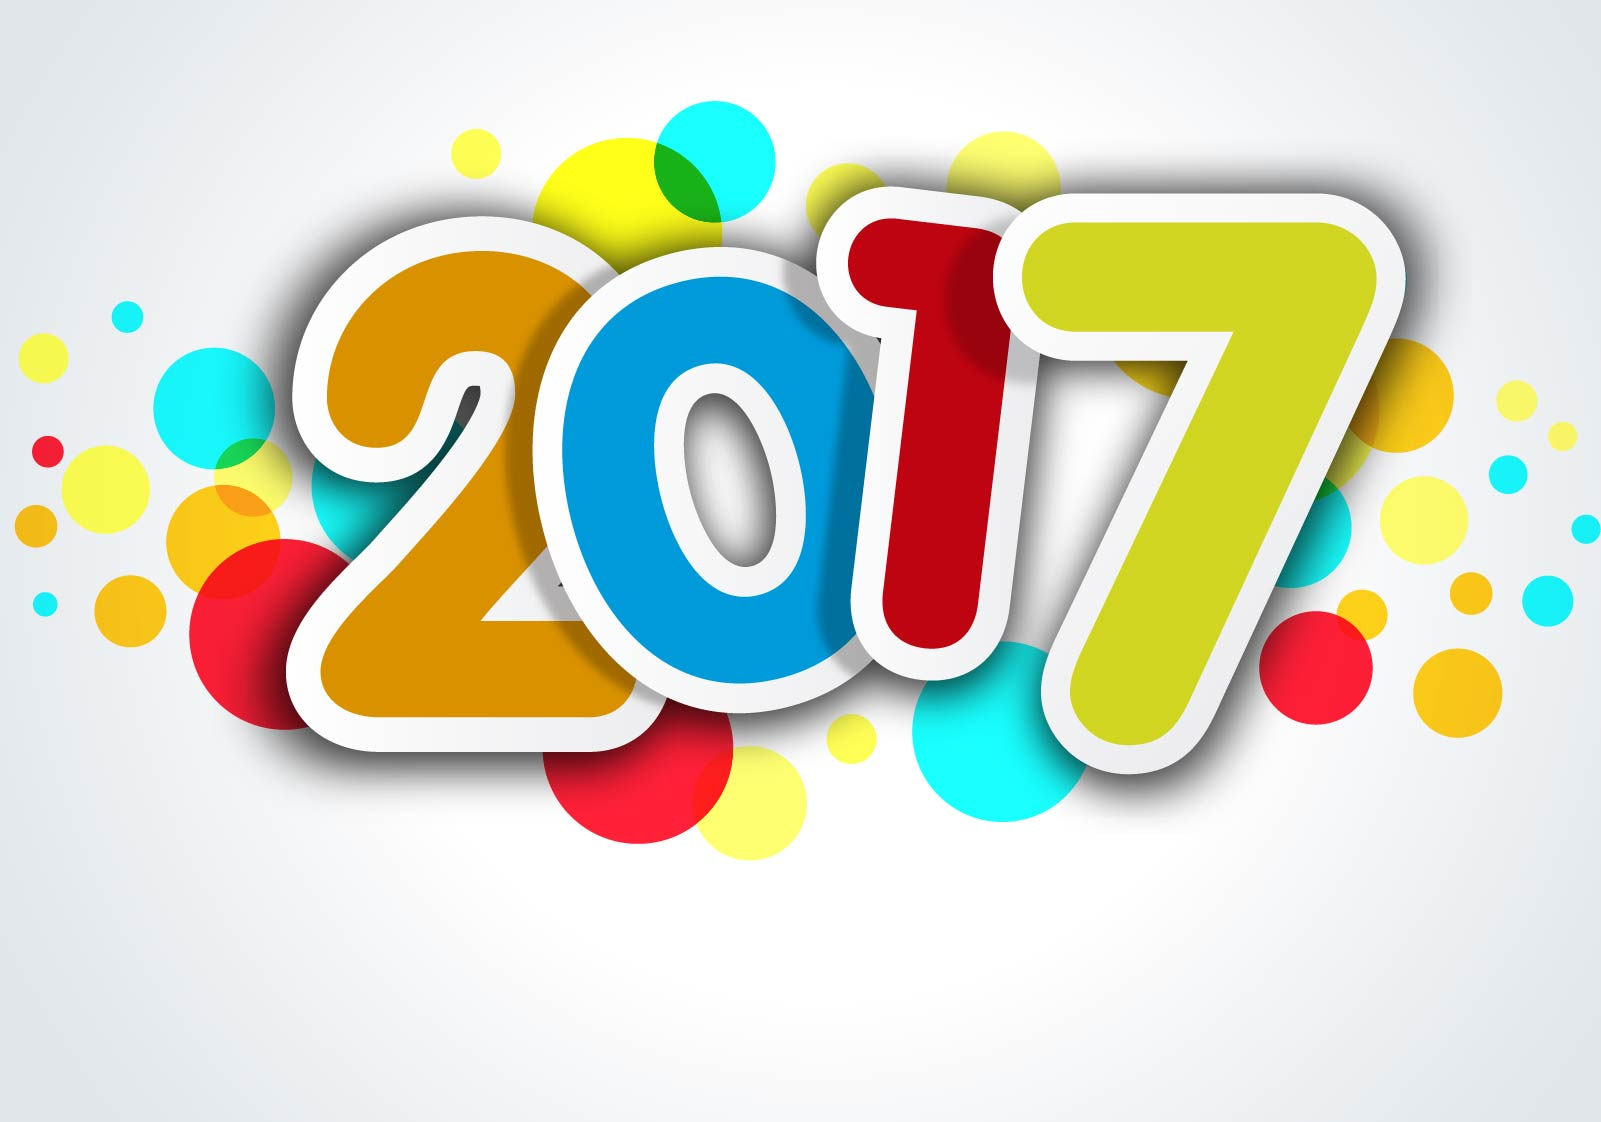 New Year Wallpapers 3d File Colorful 2017 Sticker Sign Jpg Wikimedia Commons